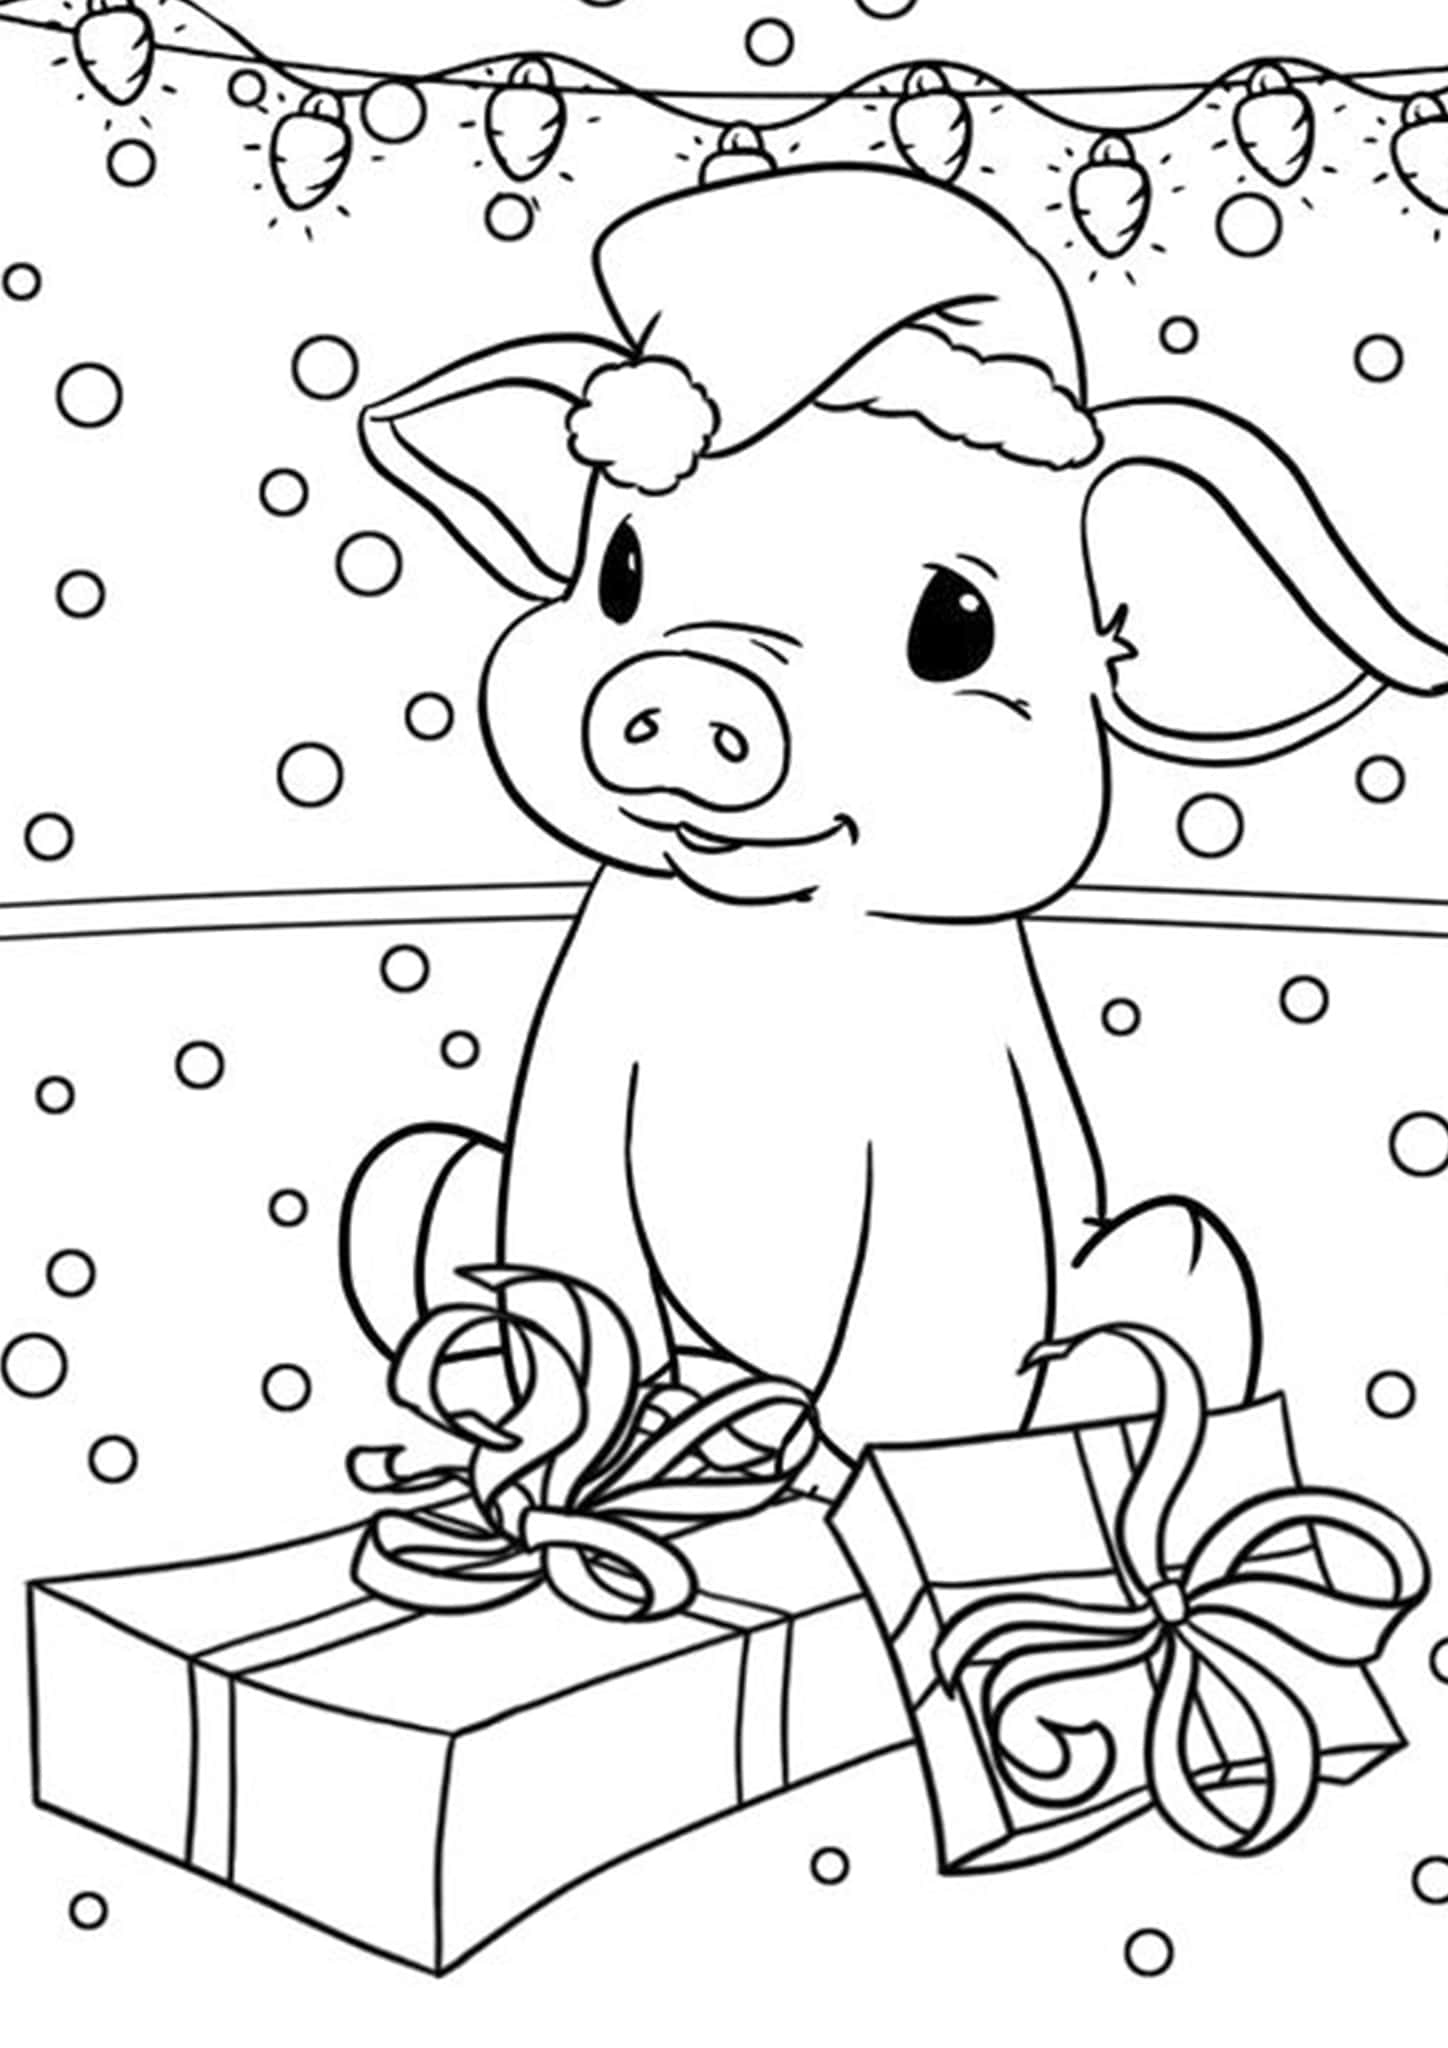 coloring pages free disney coloring pages to download and print for free free coloring pages